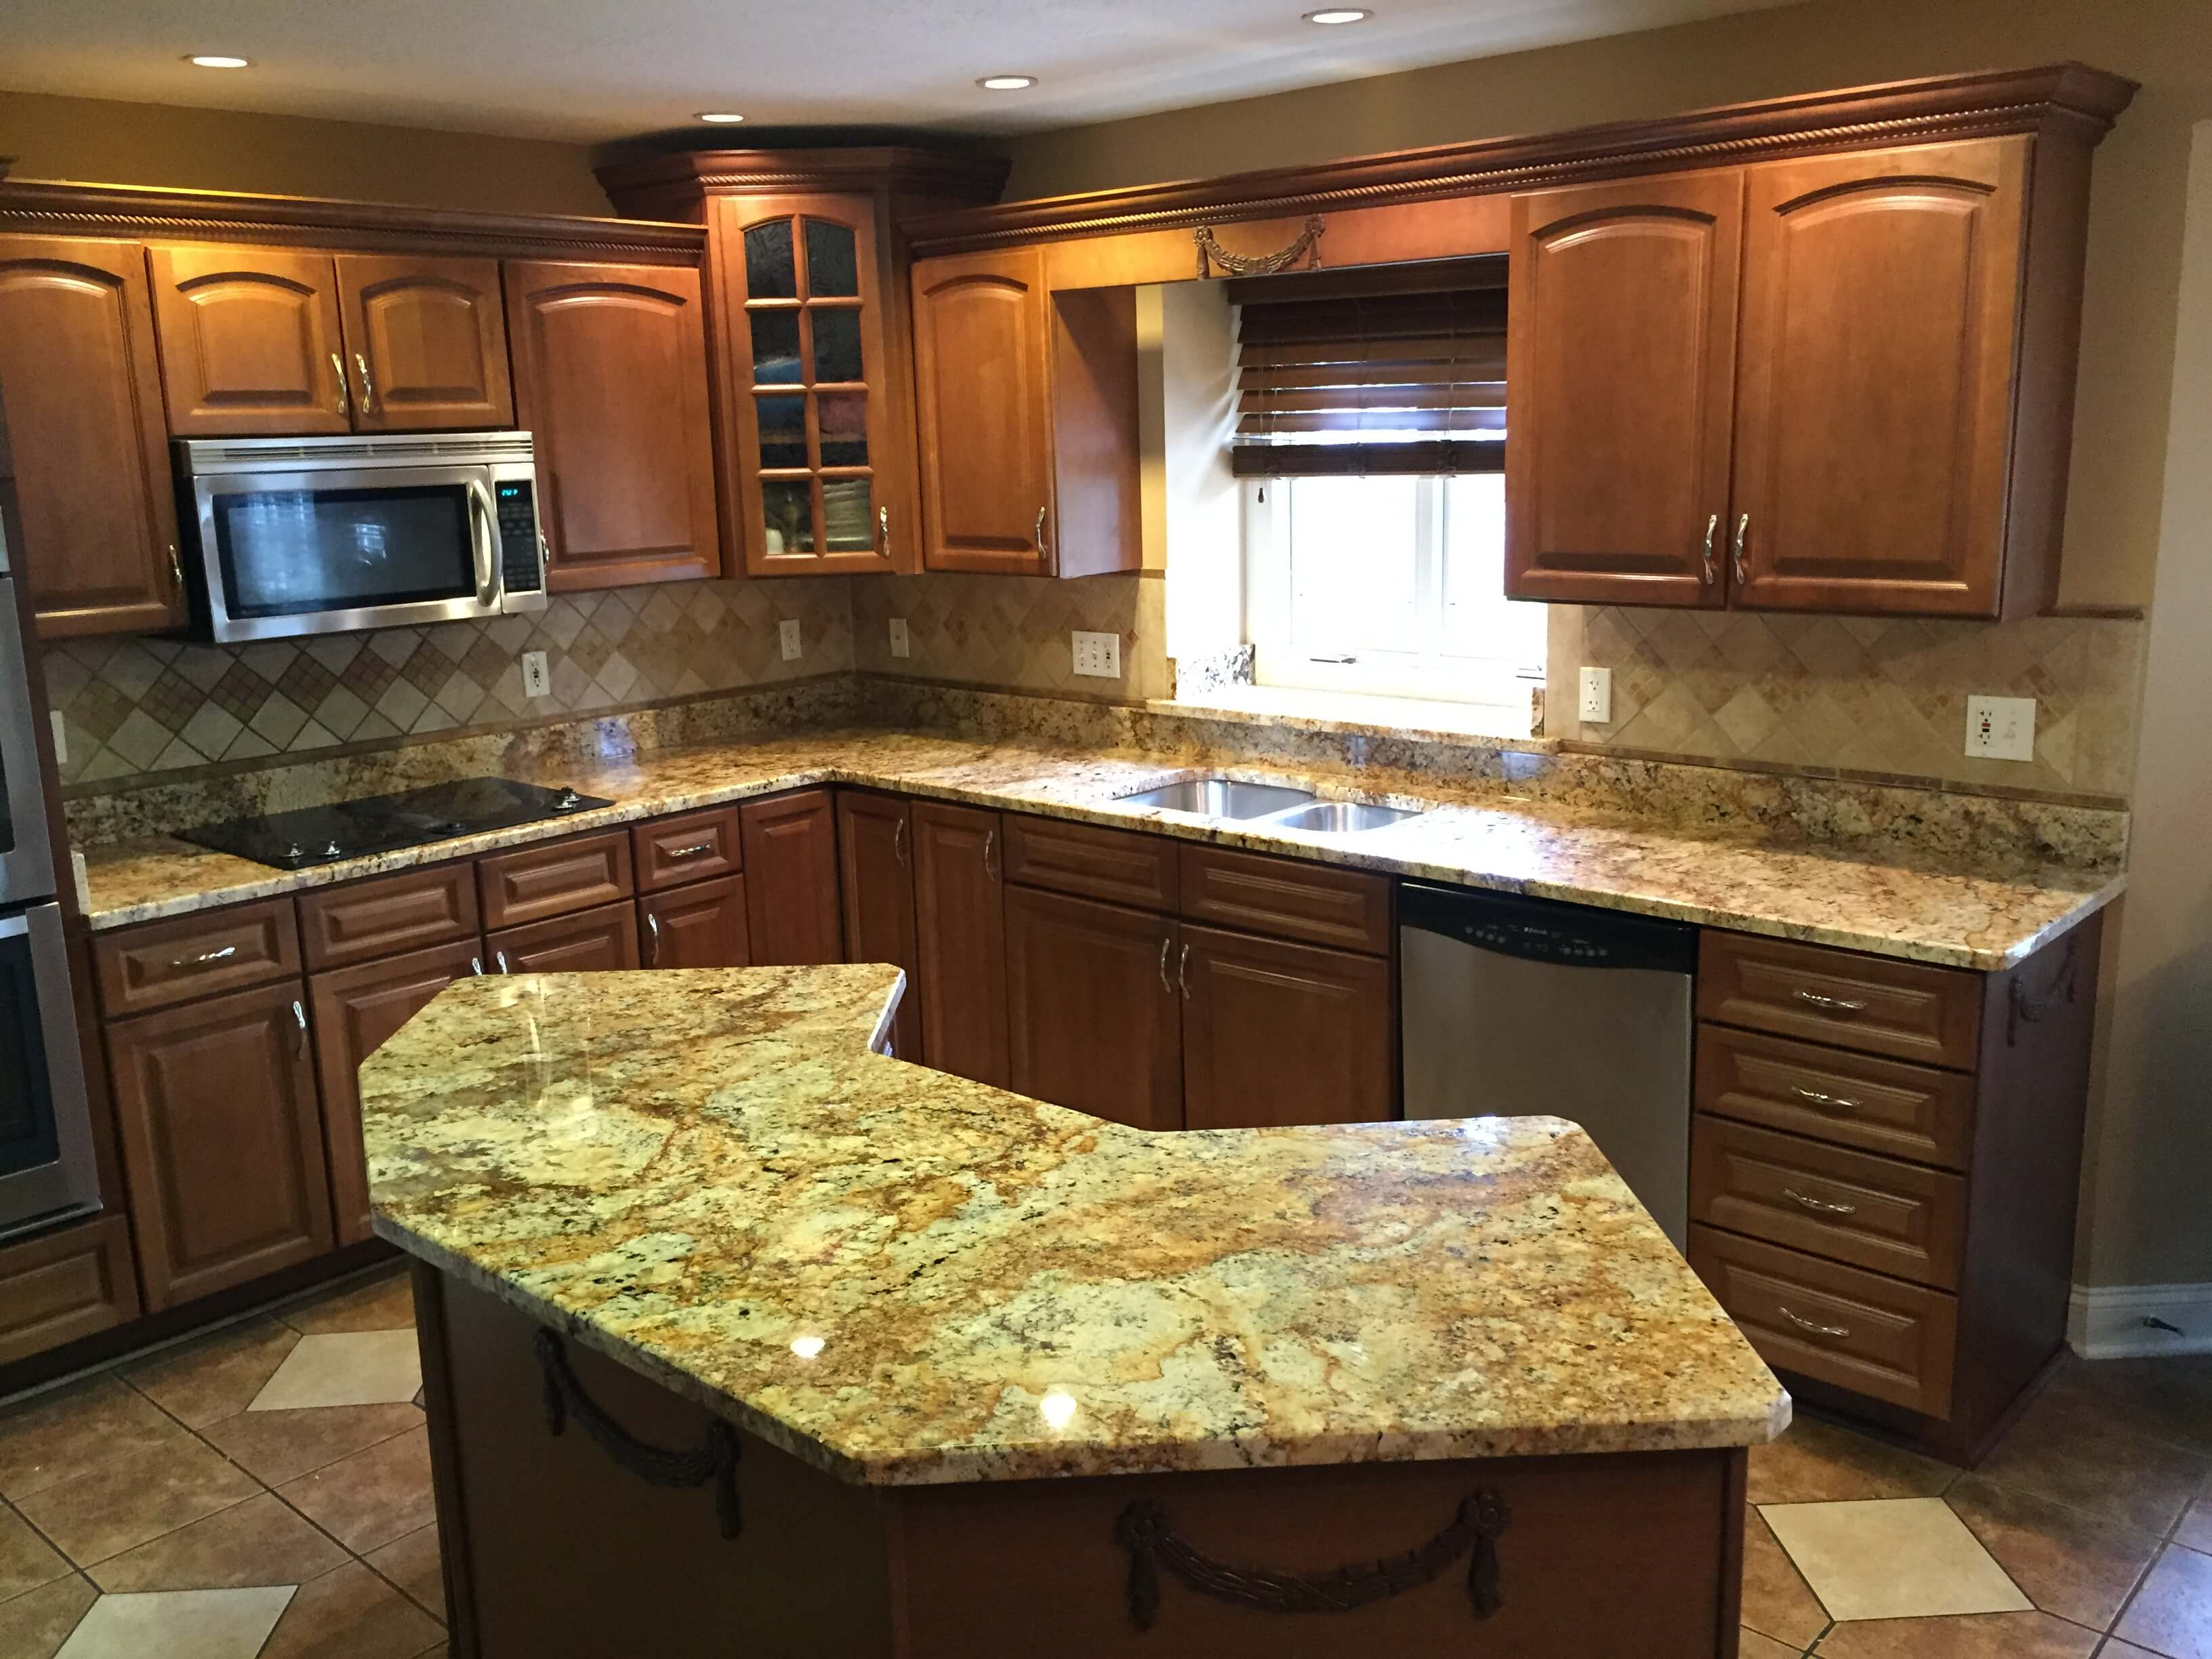 Granite Counter Tops : Kitchen granite countertops city cleveland oh